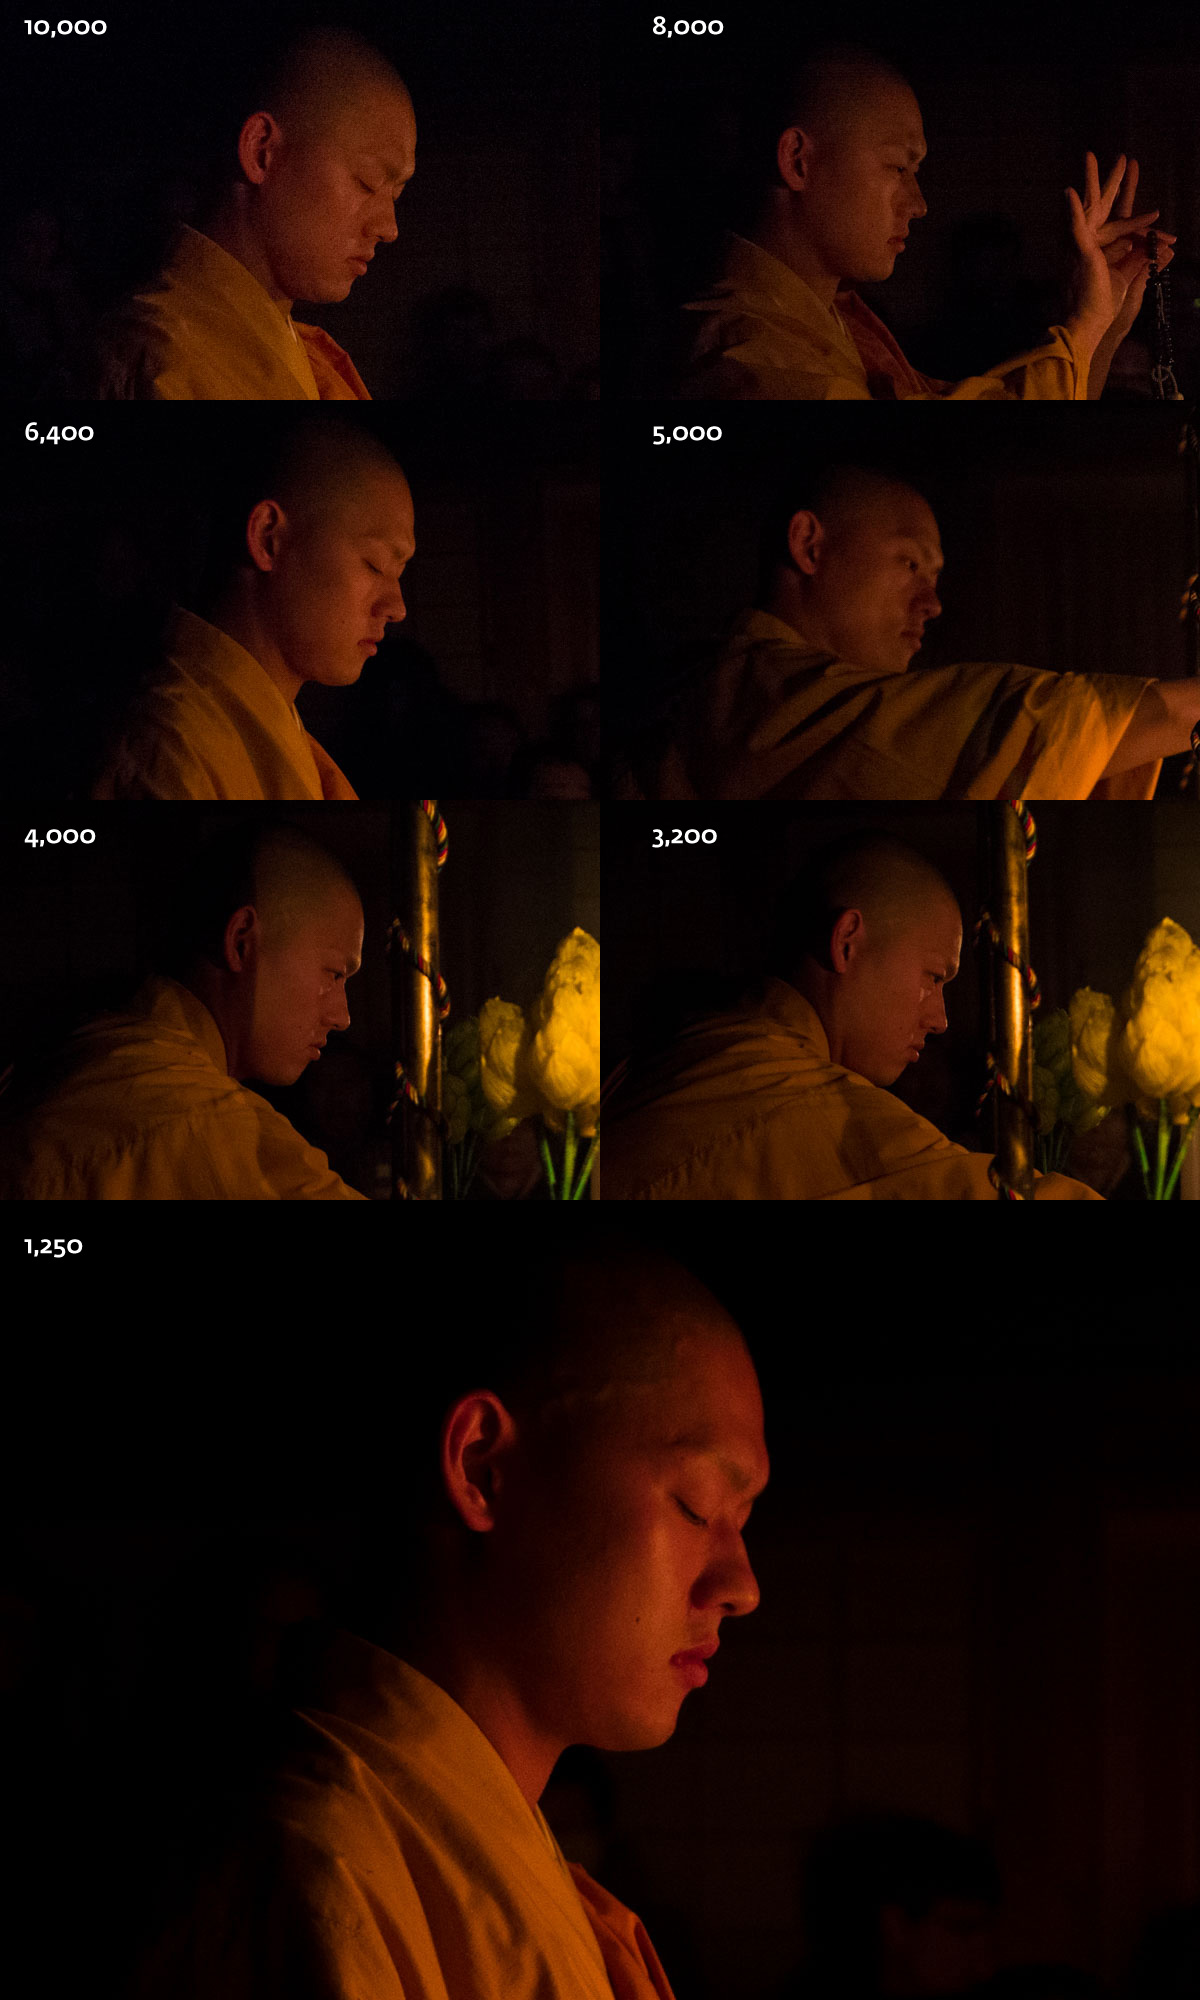 Full view, goma taki monk, head sequence